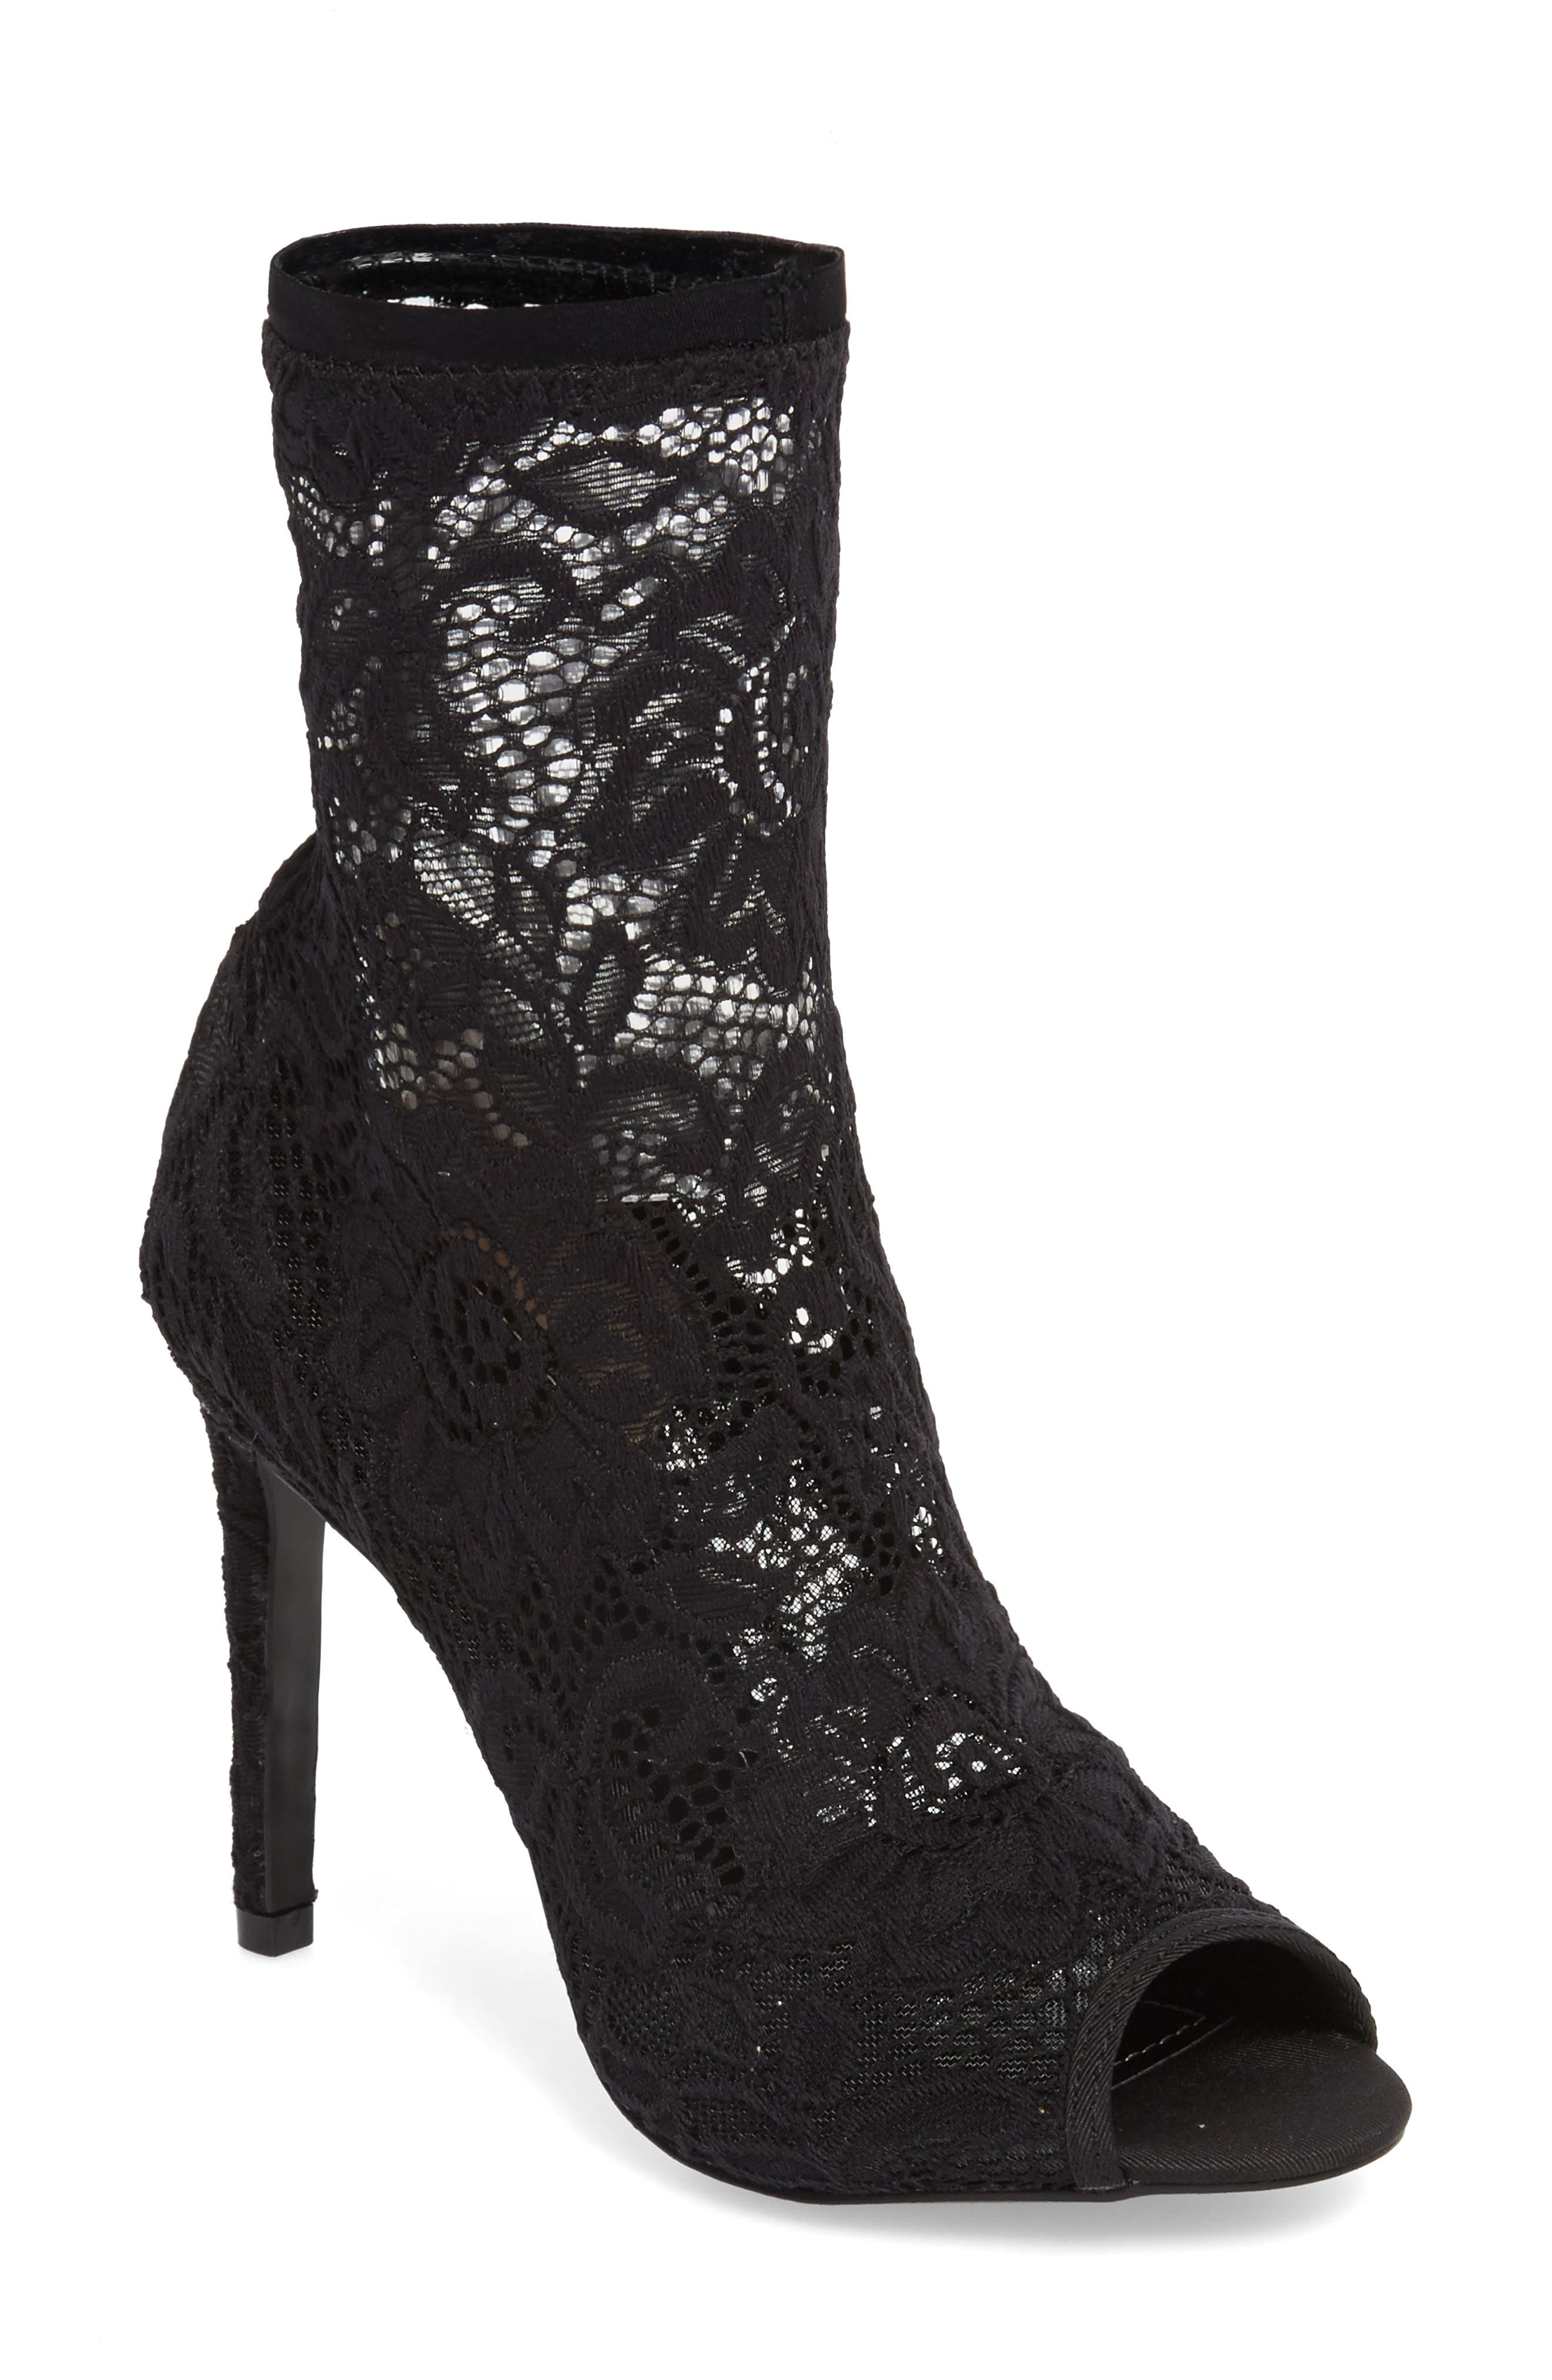 Imaginary Lace Sock Bootie,                             Main thumbnail 1, color,                             BLACK FABRIC